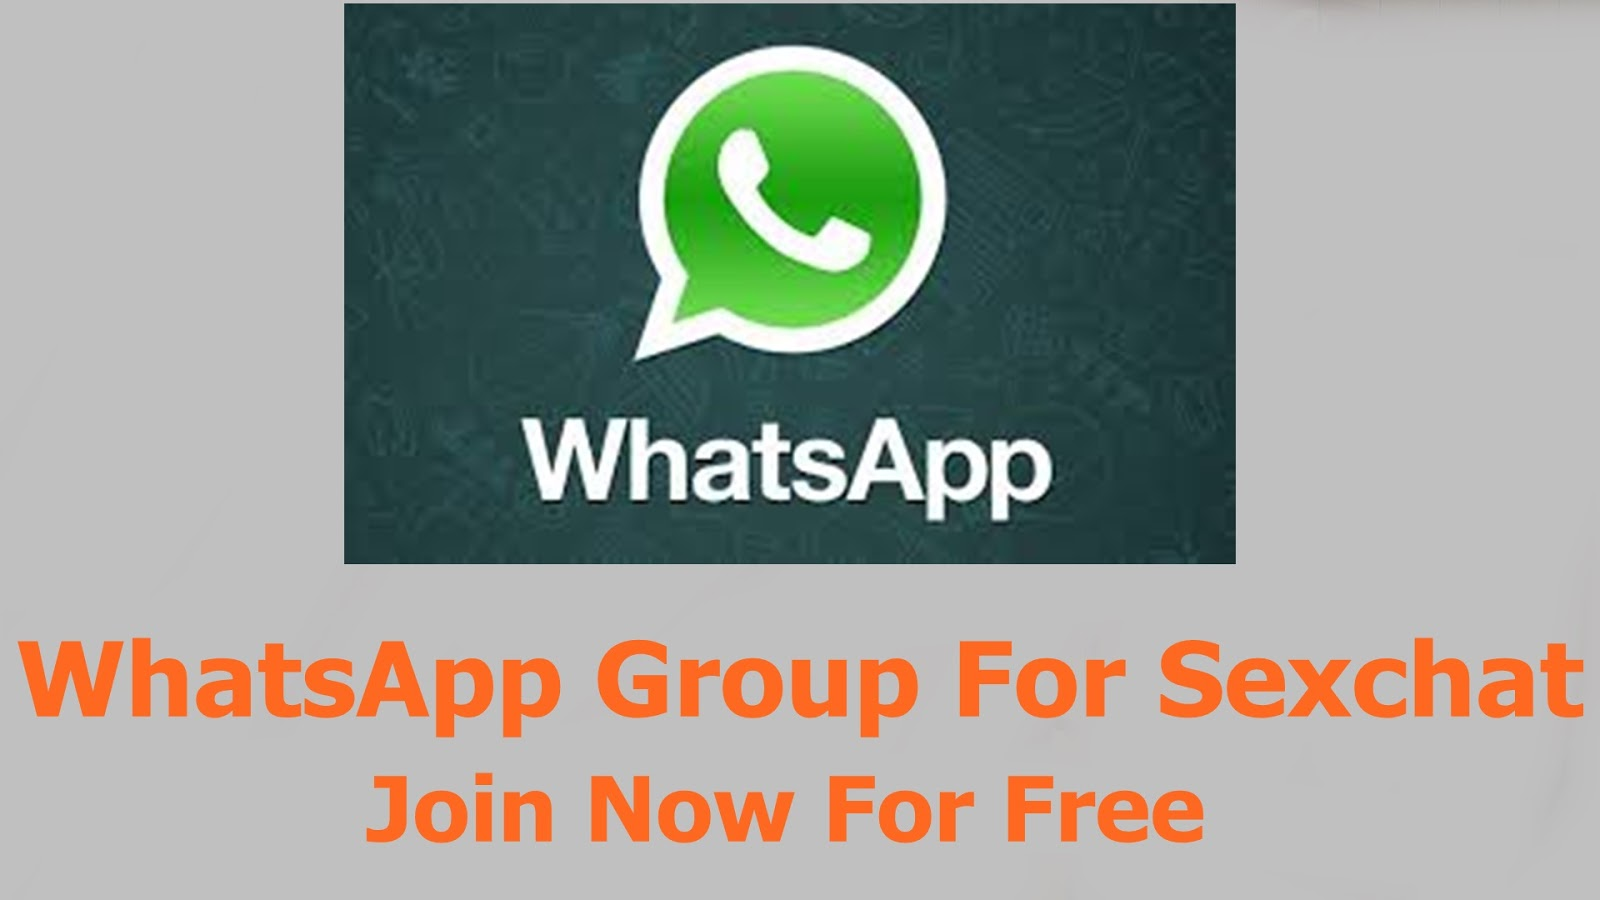 Free group sex chat